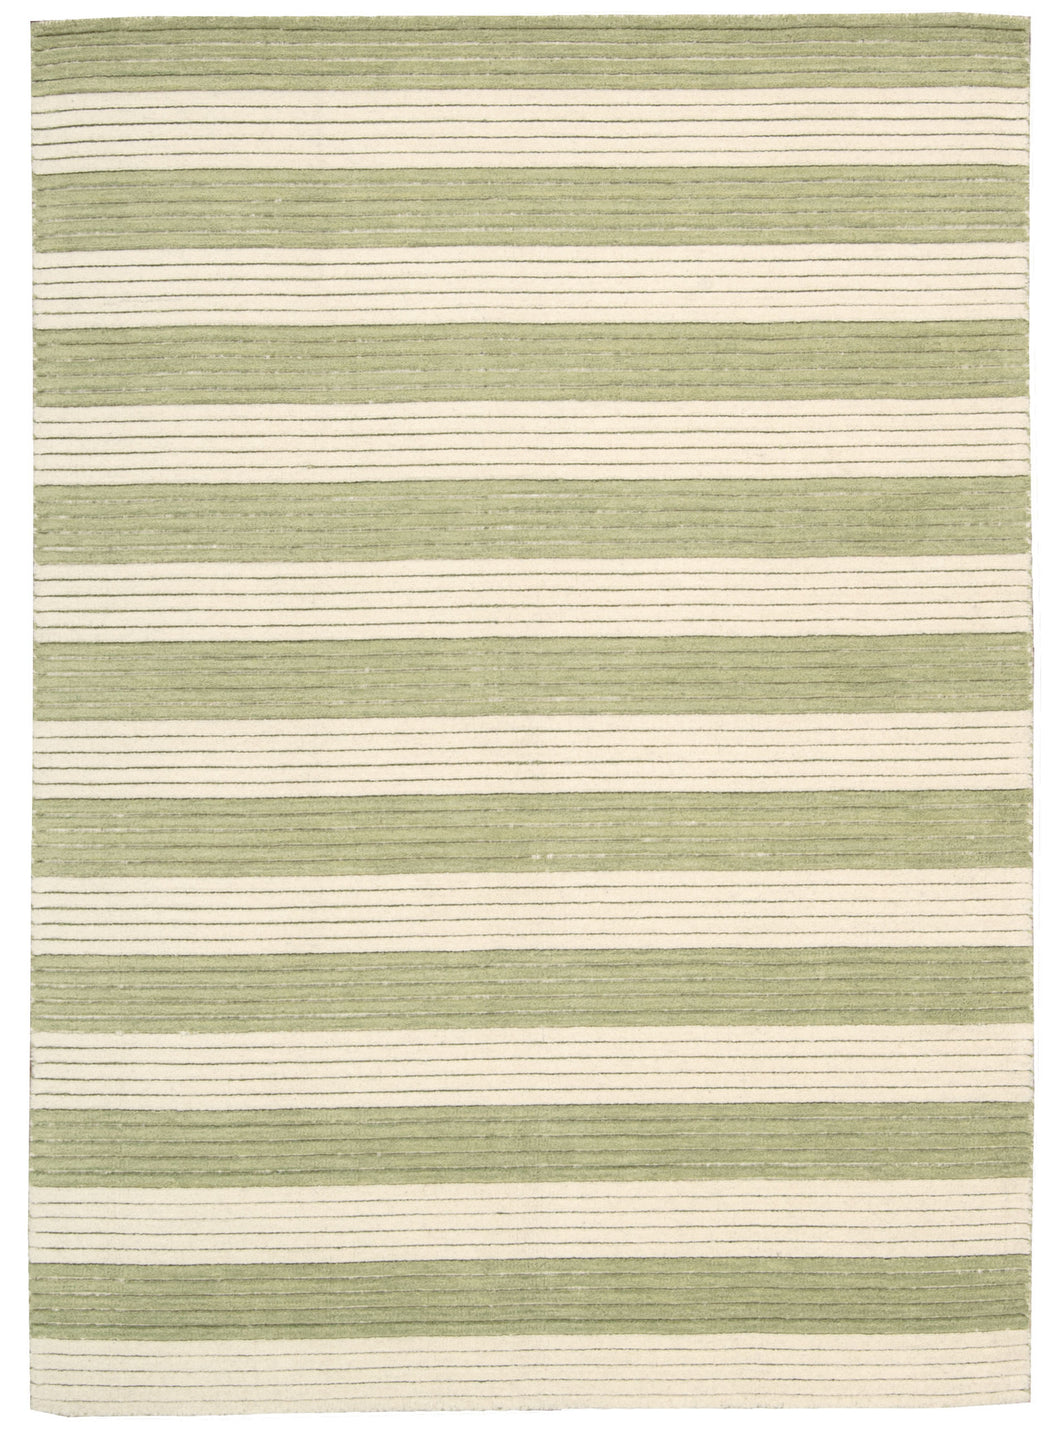 Barclay Butera Ripple Sage Area Rug By Nourison RIP02 SAGE (Rectangle) | BOGO USA